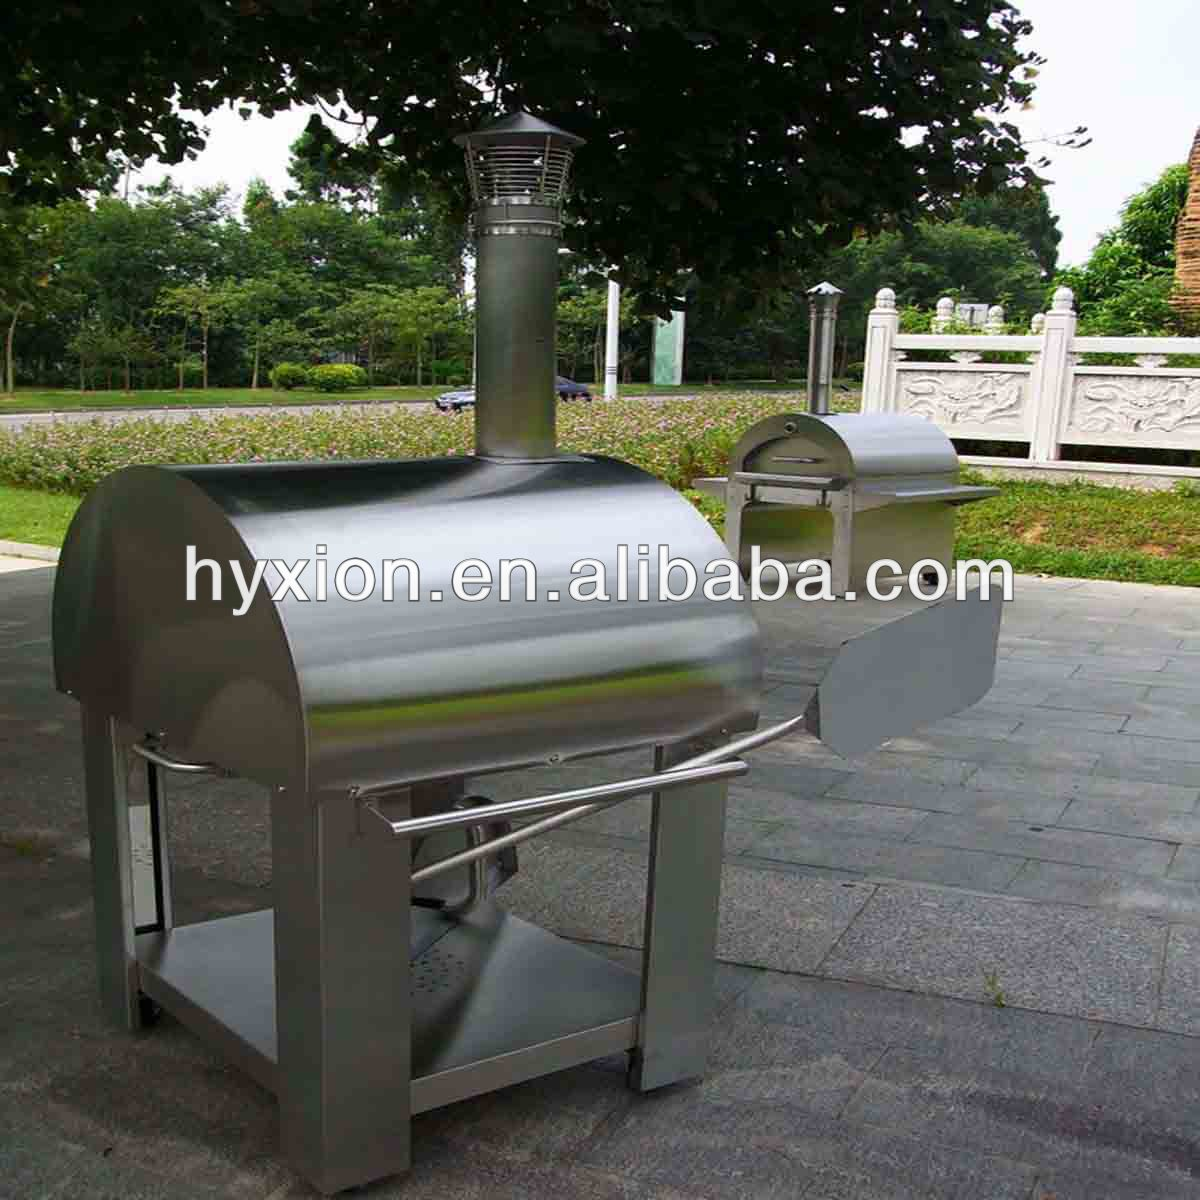 Stainless steel commercial pizza oven brick oven wood fired pizza oven